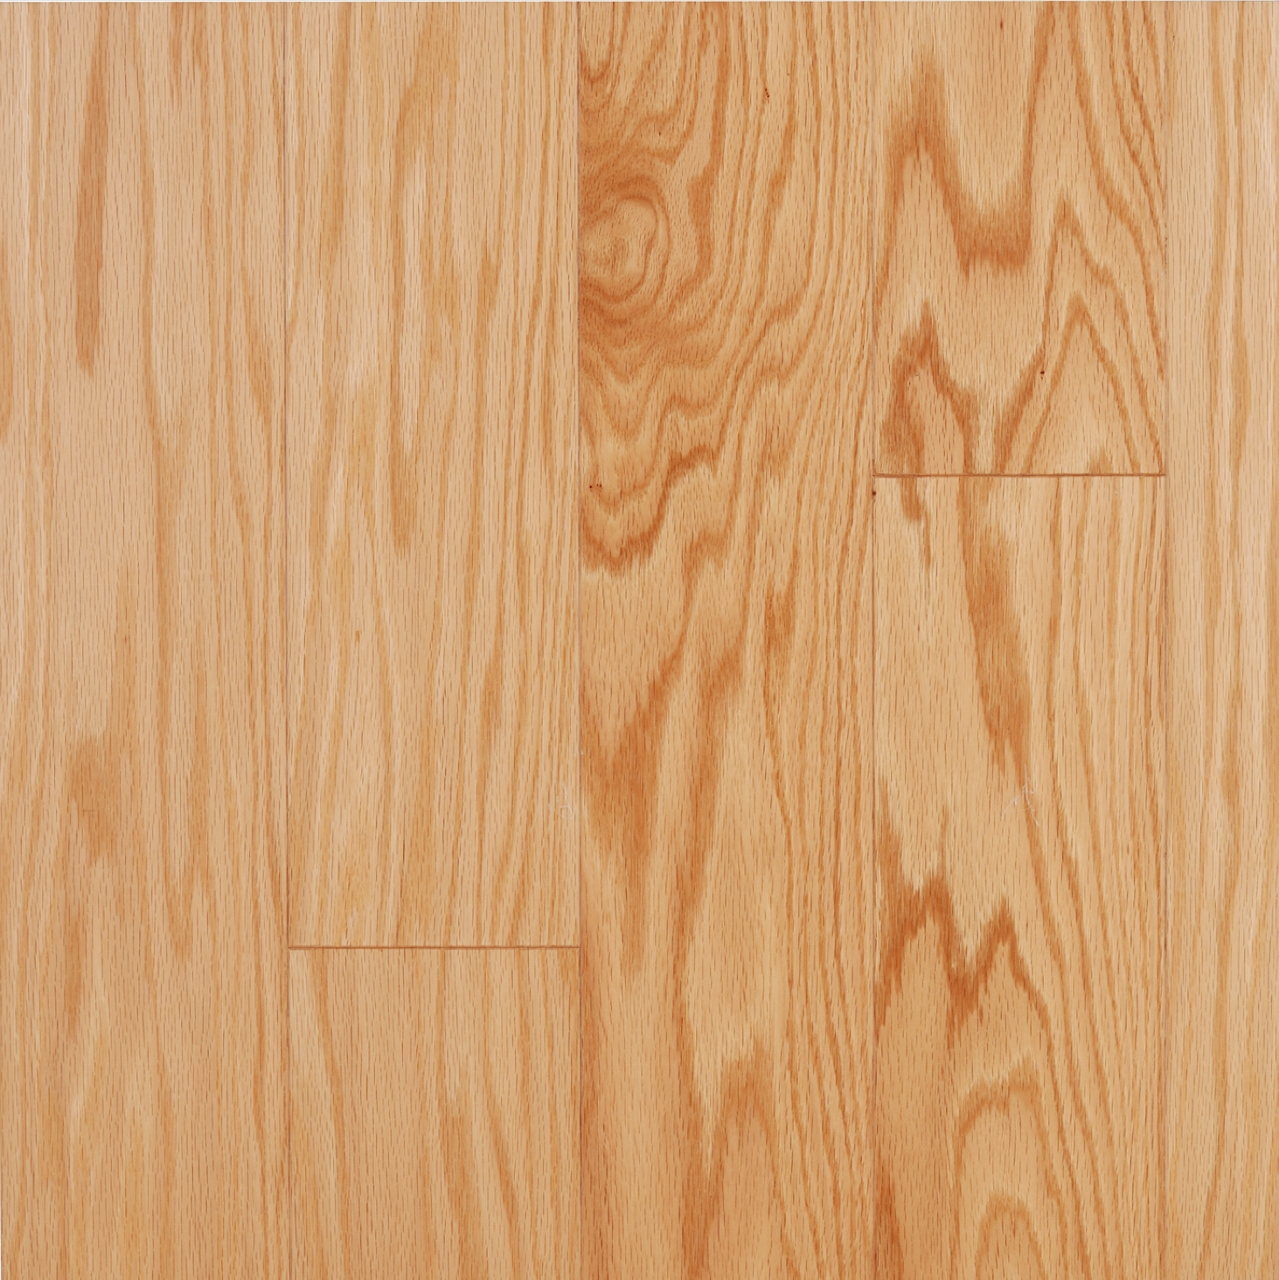 Lm flooring kendall red oak natural hardwood flooring for Natural red oak floors